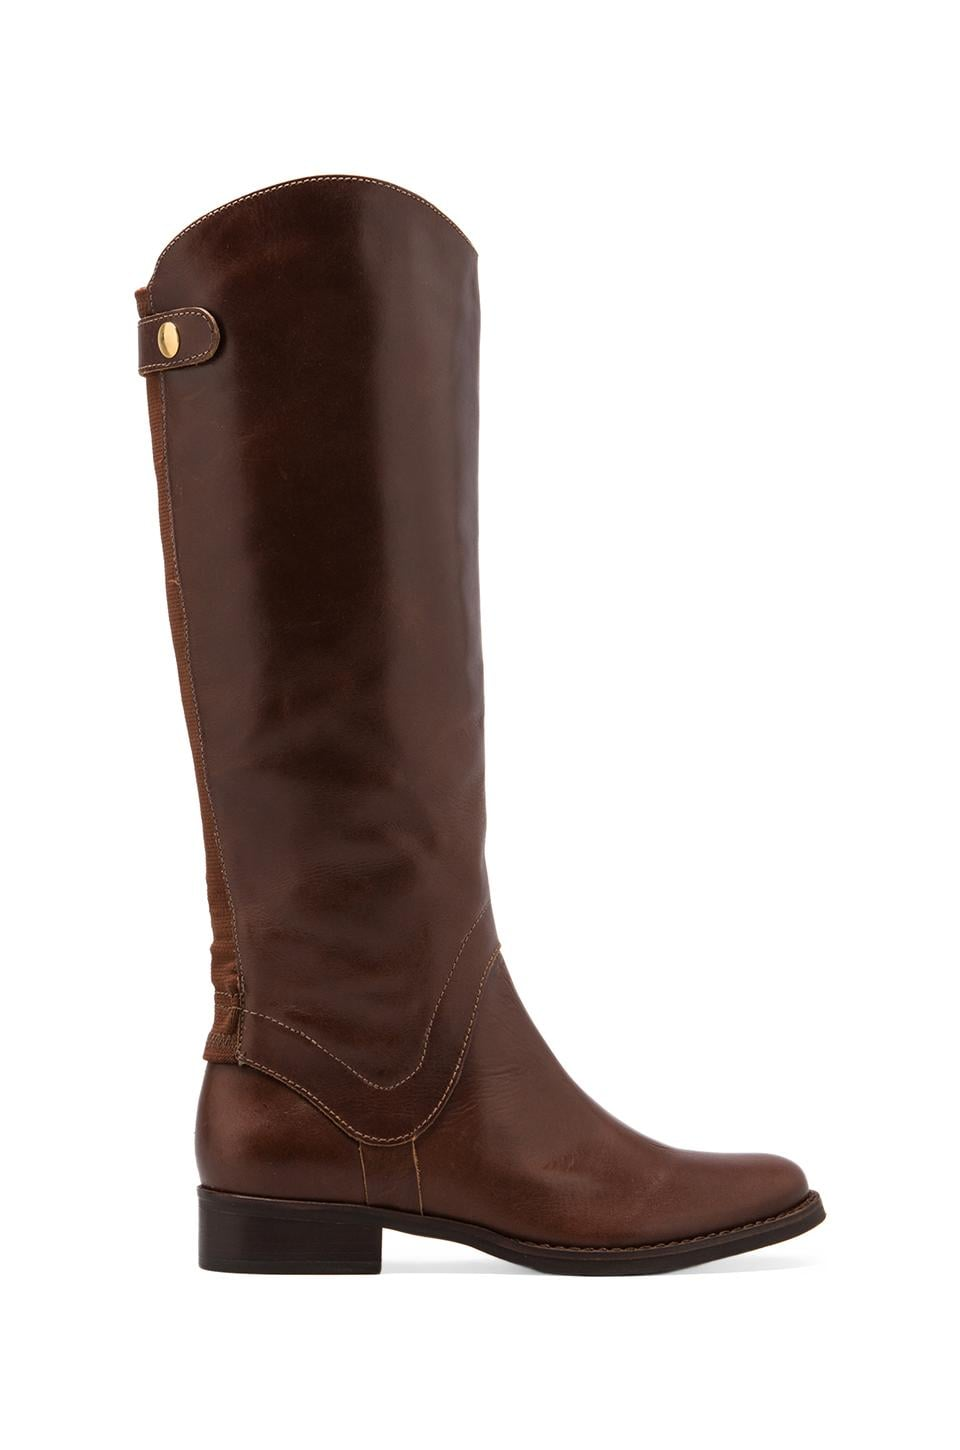 Steven Sady Boot in Cognac Leather